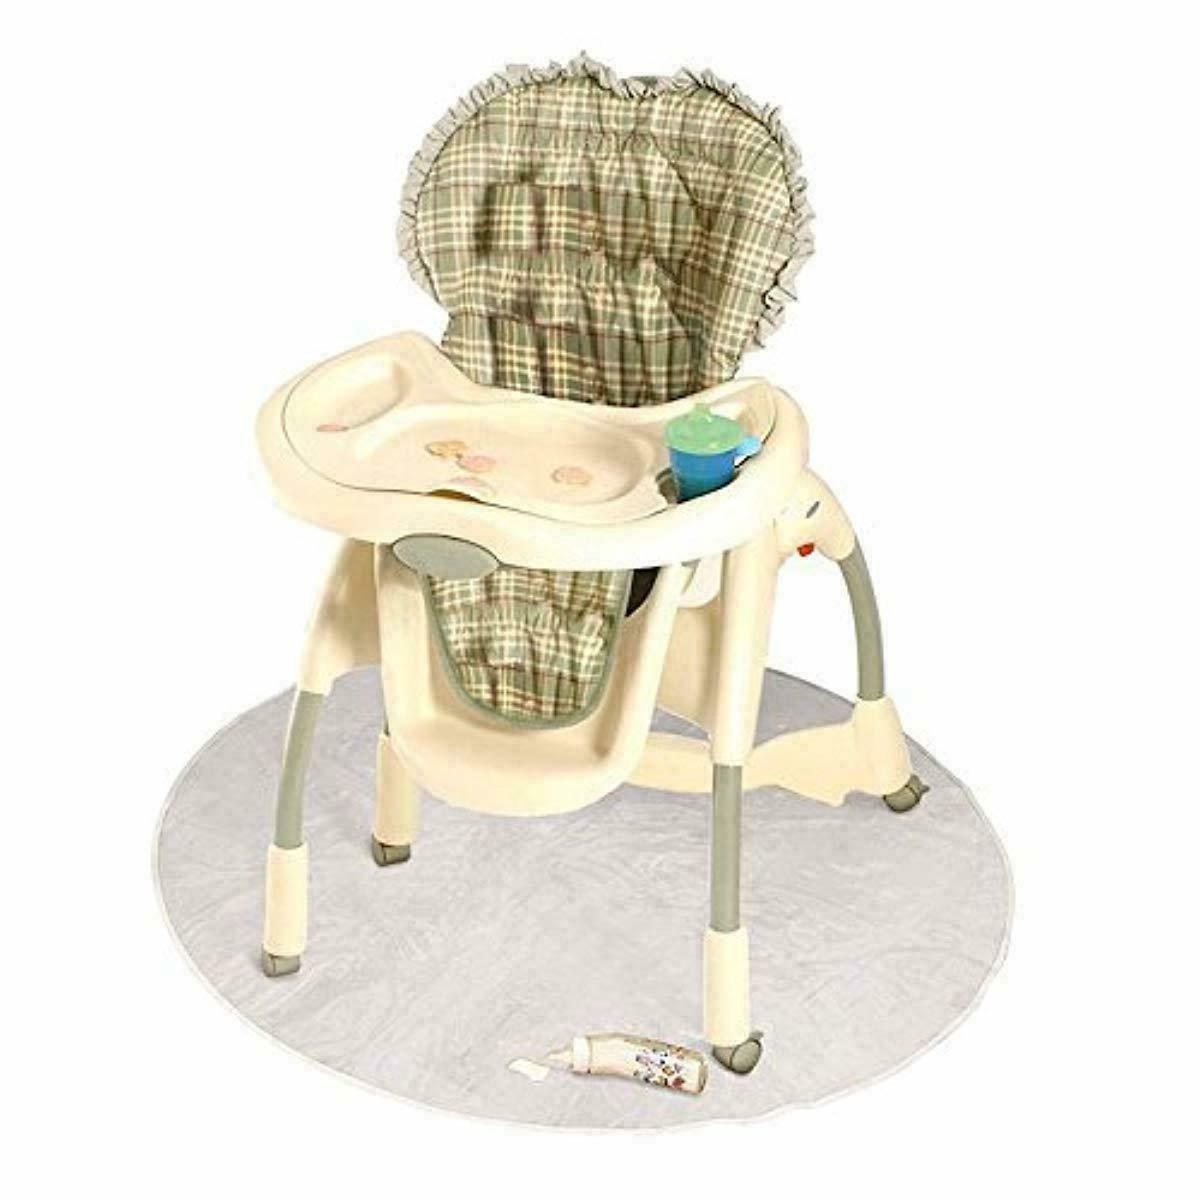 50 Inch High Chair Infant Toddler Floor Protector Floor Mat Clear